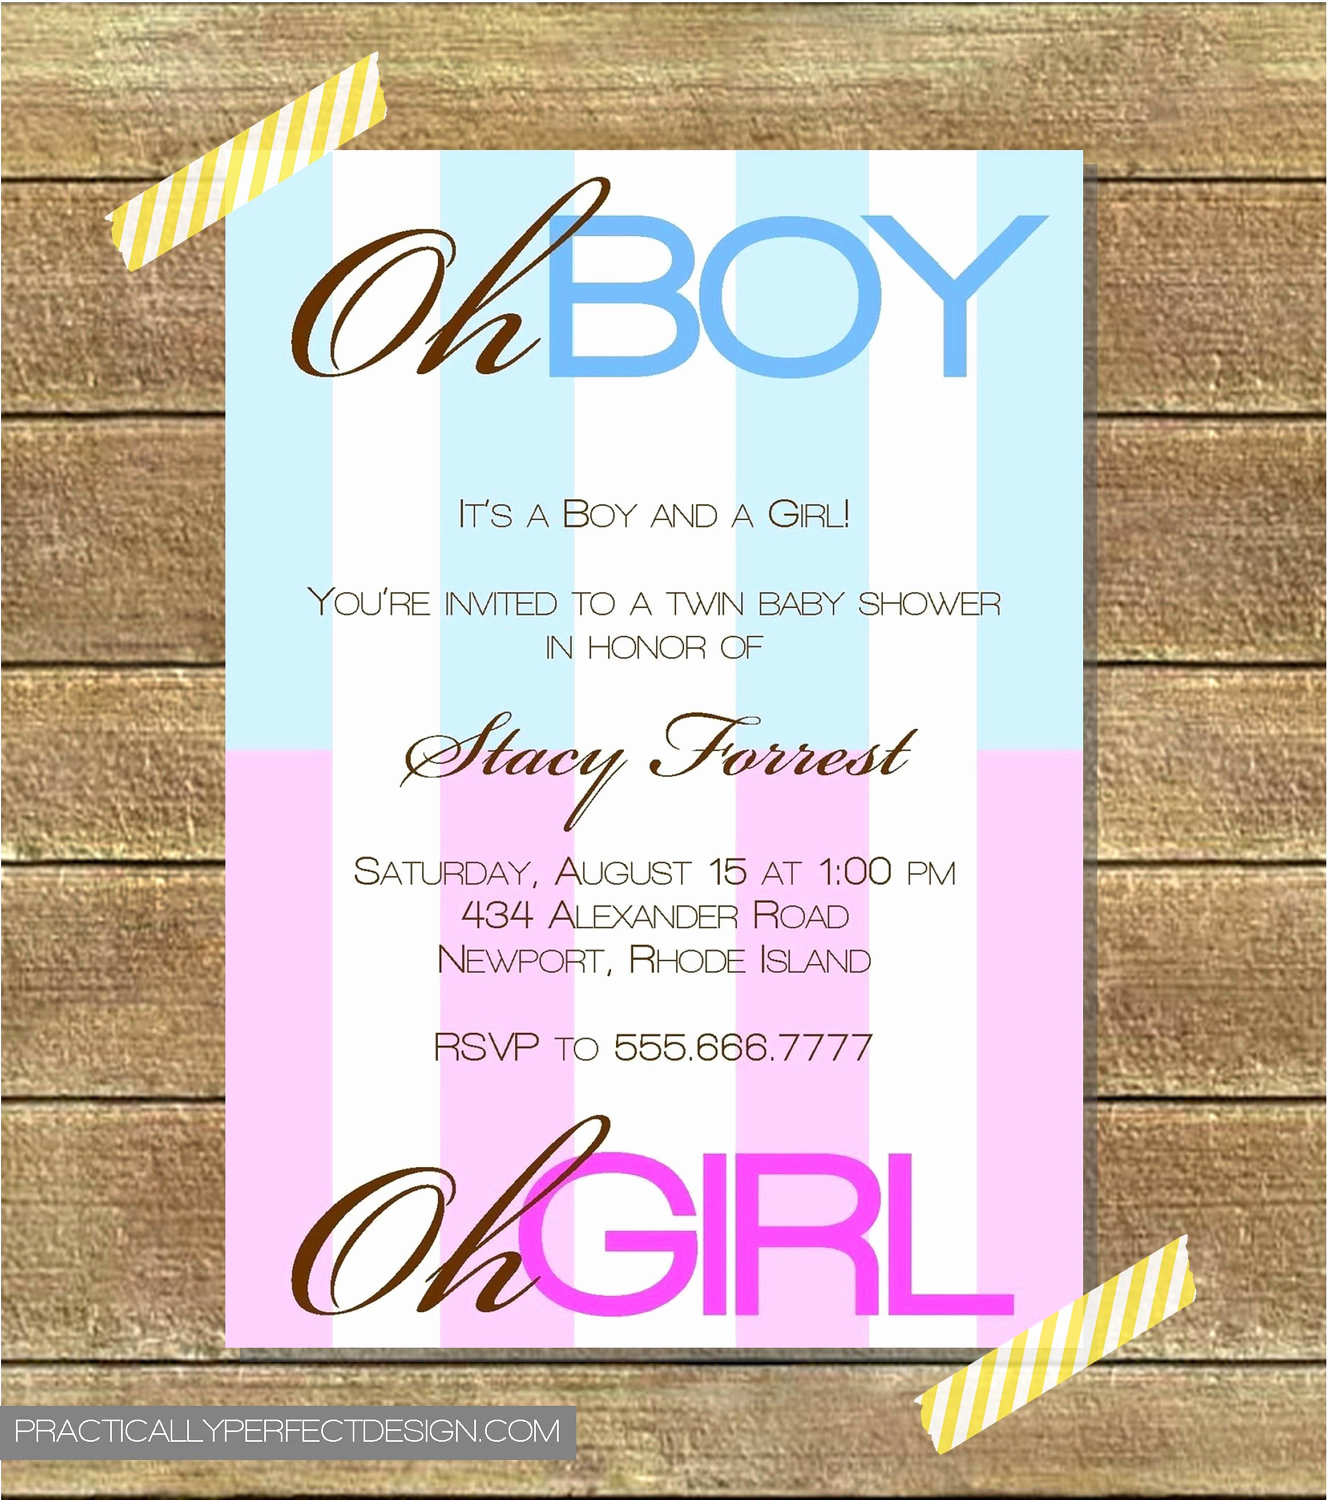 Baby Shower Invitation Ideas Girl Best Of Twin Baby Shower Invitation Boy and Girl by Gabriellekearney